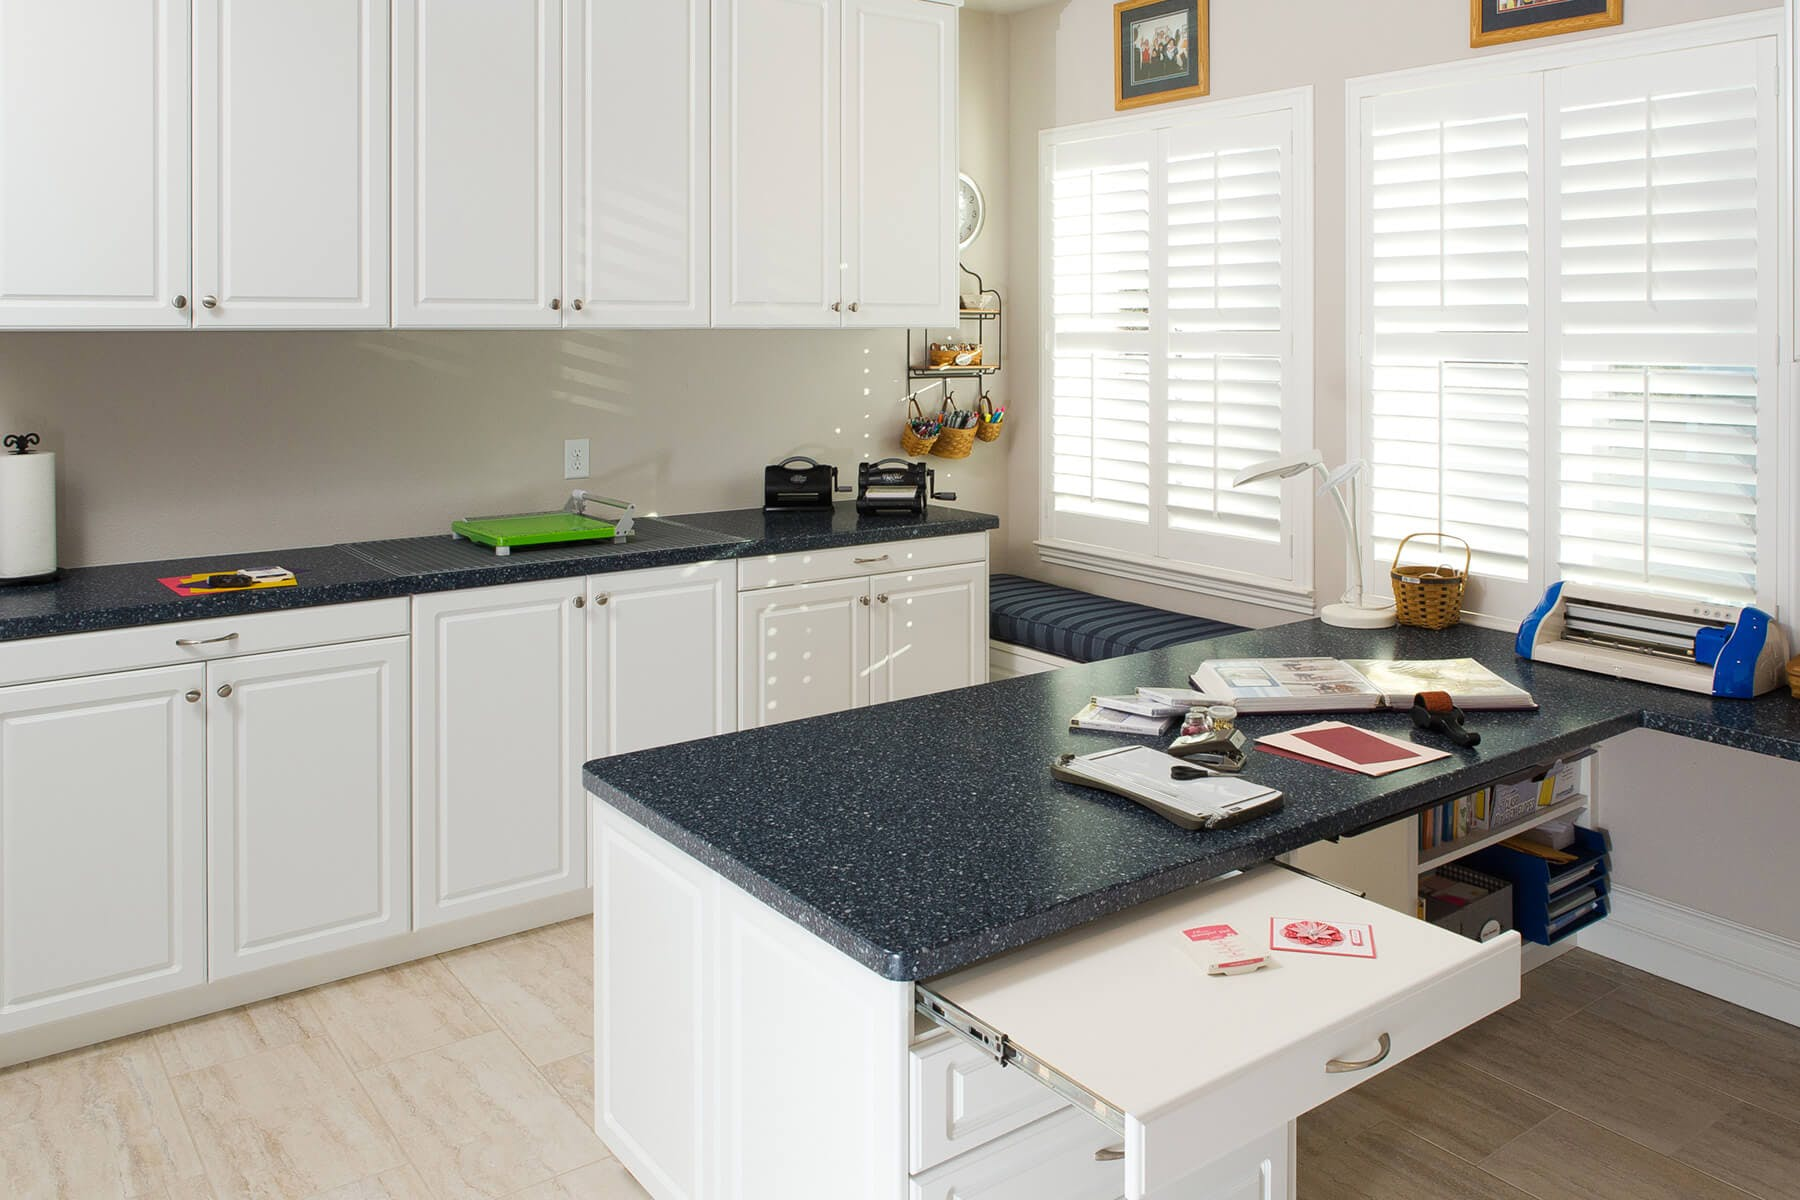 Pull Out Shelf In Custom Built Desk With Standing Height Base Cabinets And  Uppers Filled With ...